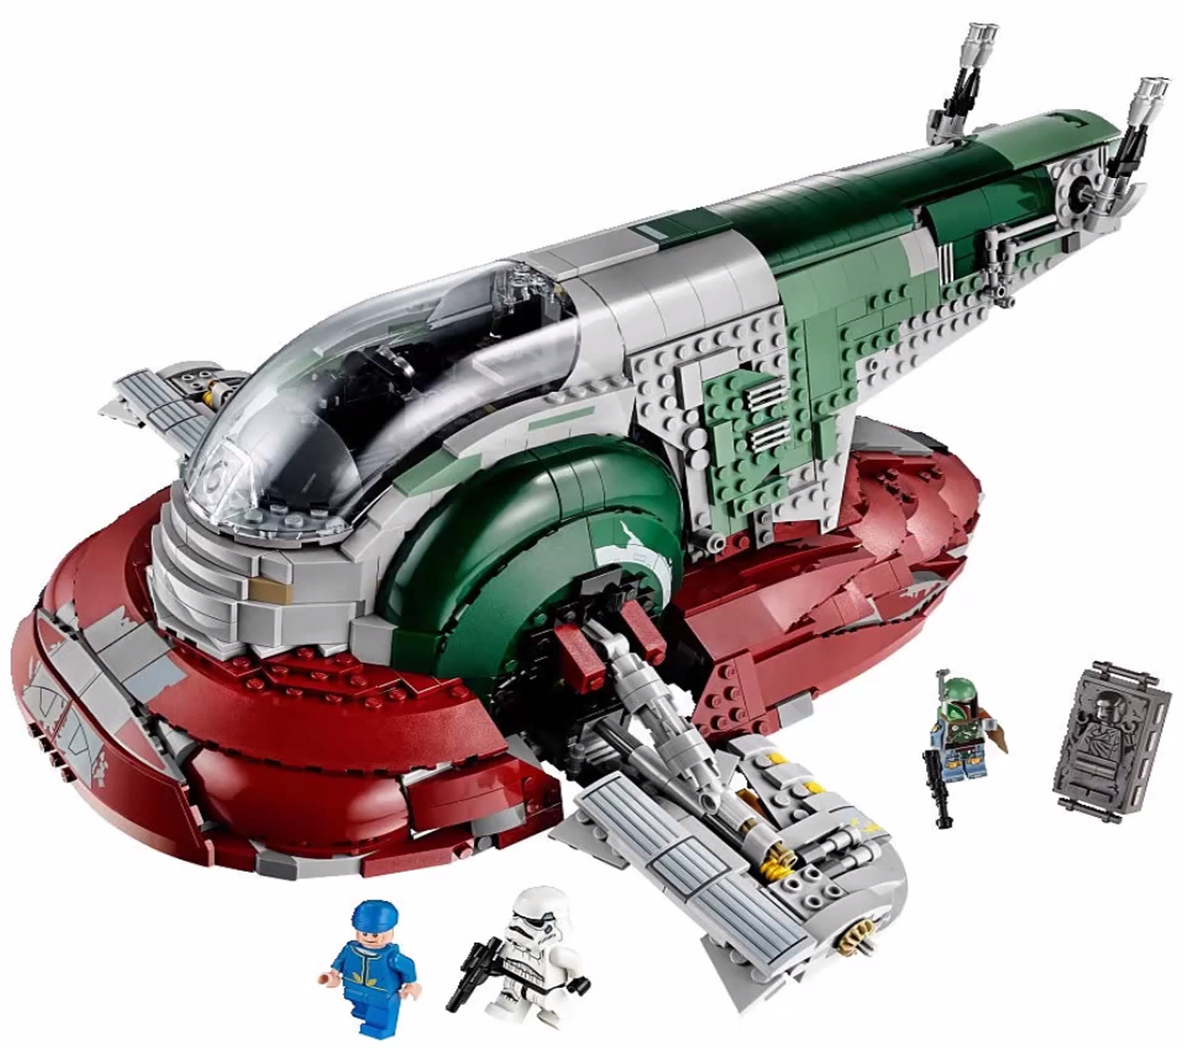 LEGO STAR WARS (75060) Slave I 1 Set 75060 with Boba Fett Ultimate Collectors Series